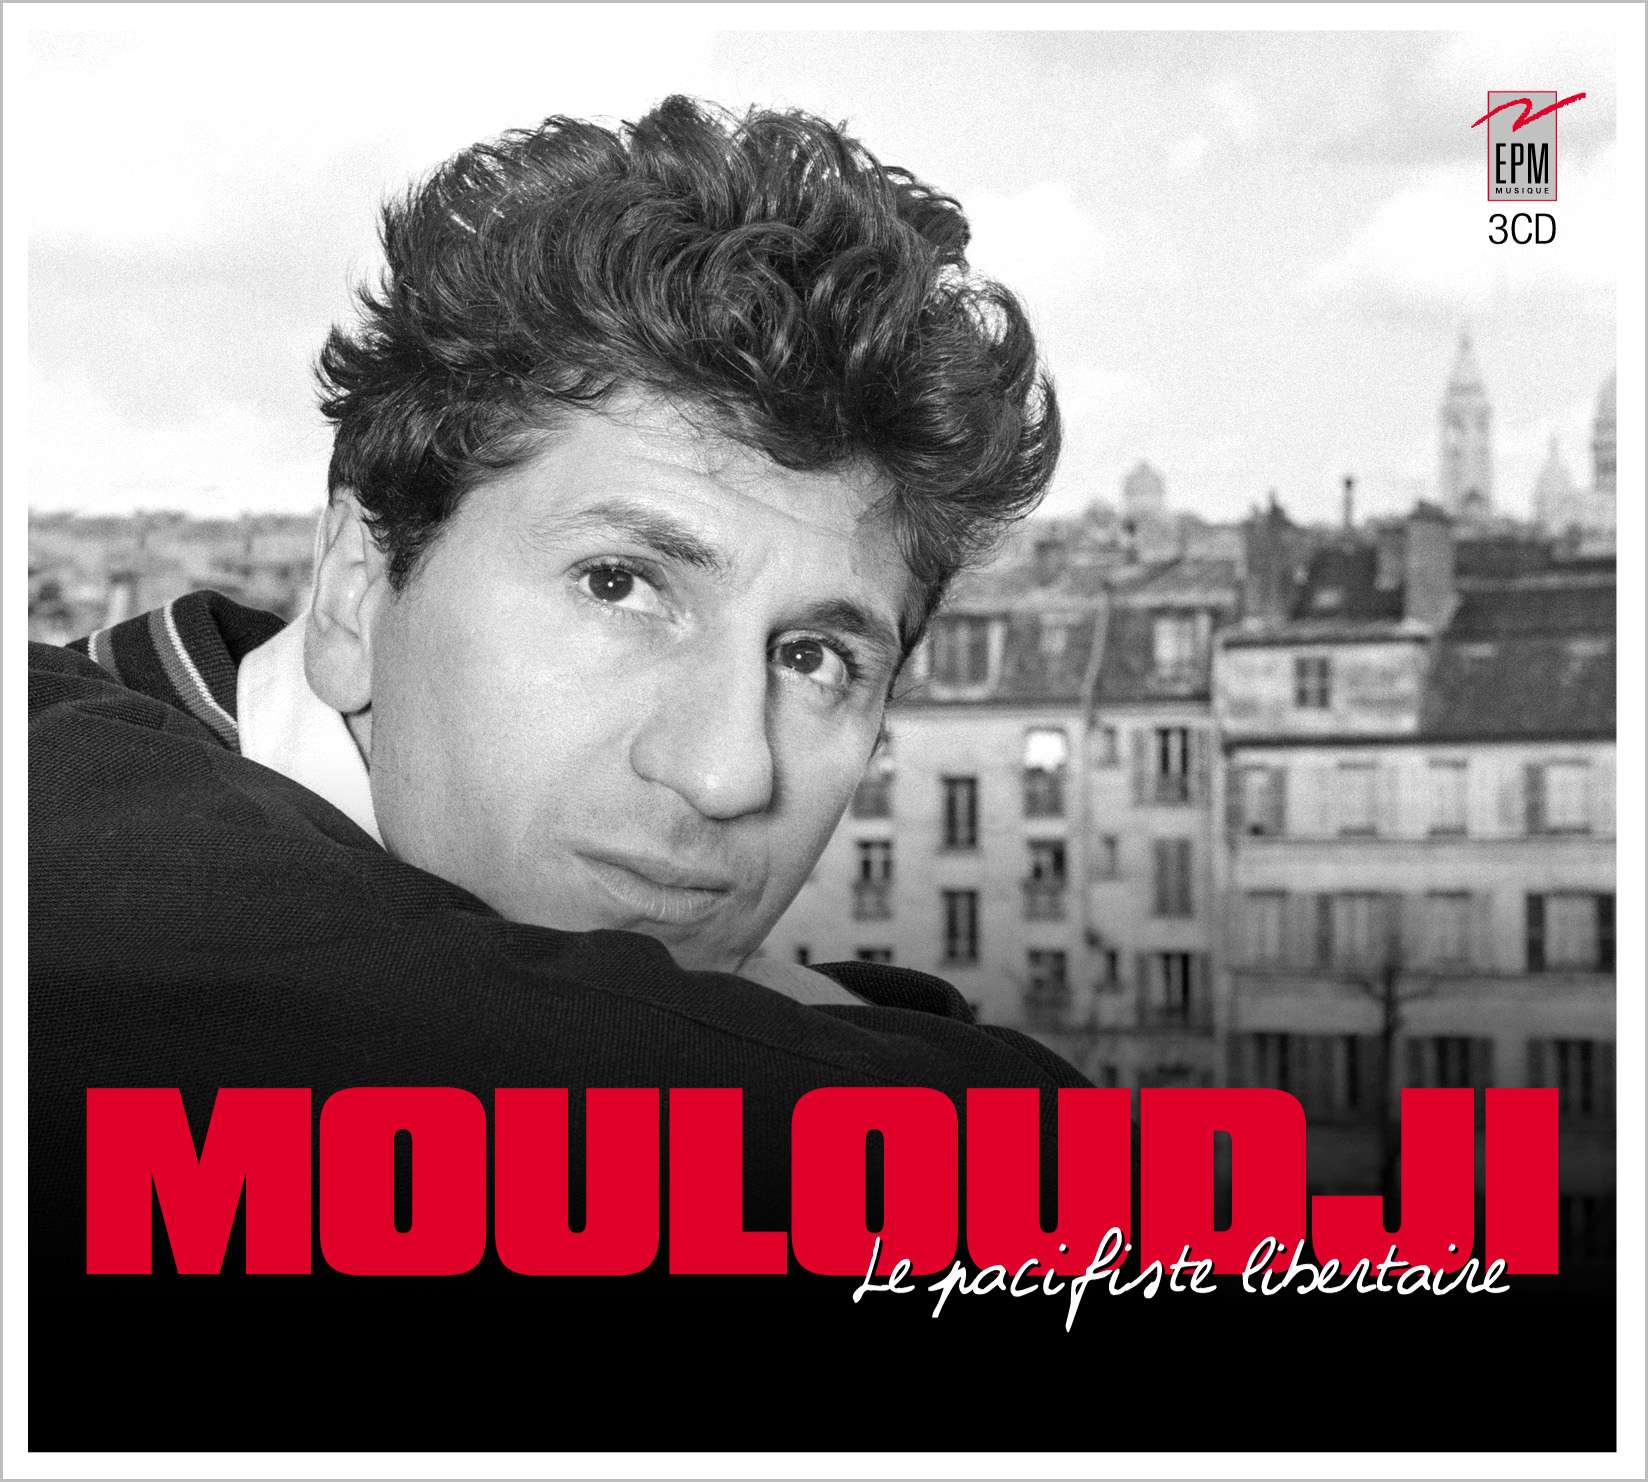 MOULOUDJI - LE PACIFISTE LIBERTAIRE